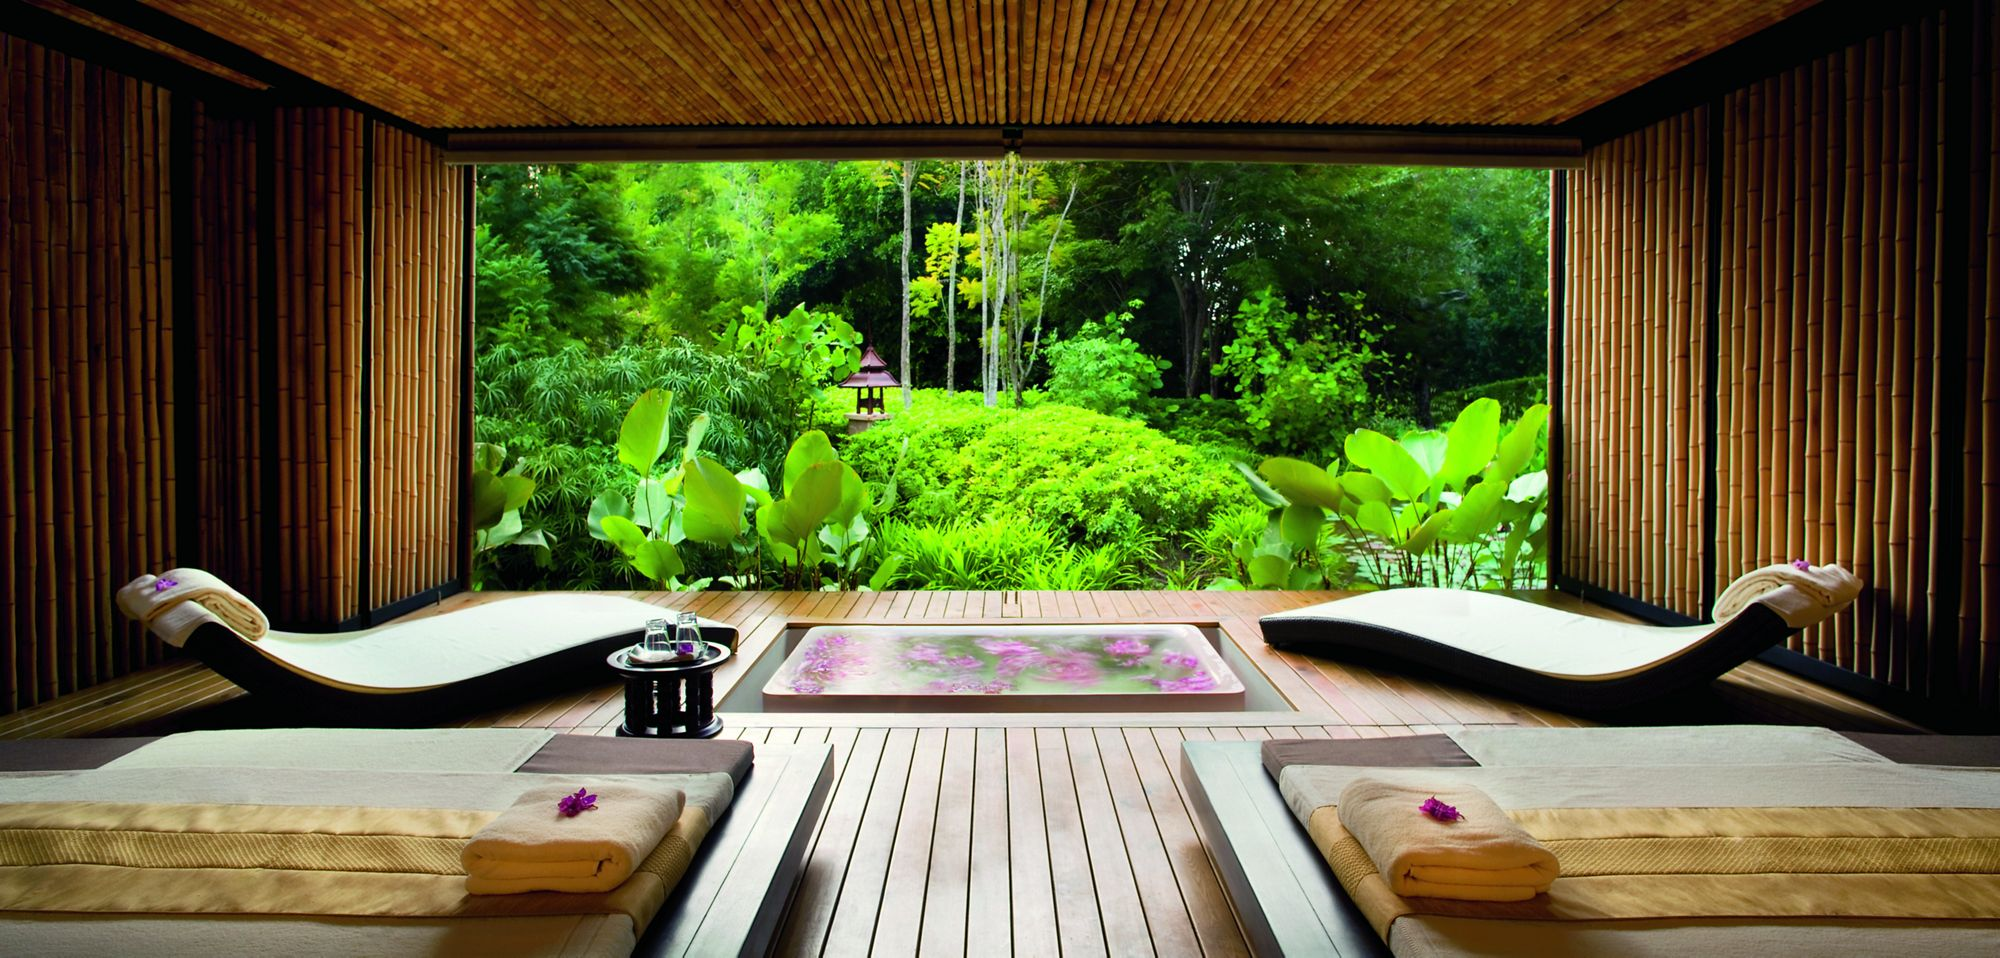 Meditation Room Decorating in SPA for relaxation